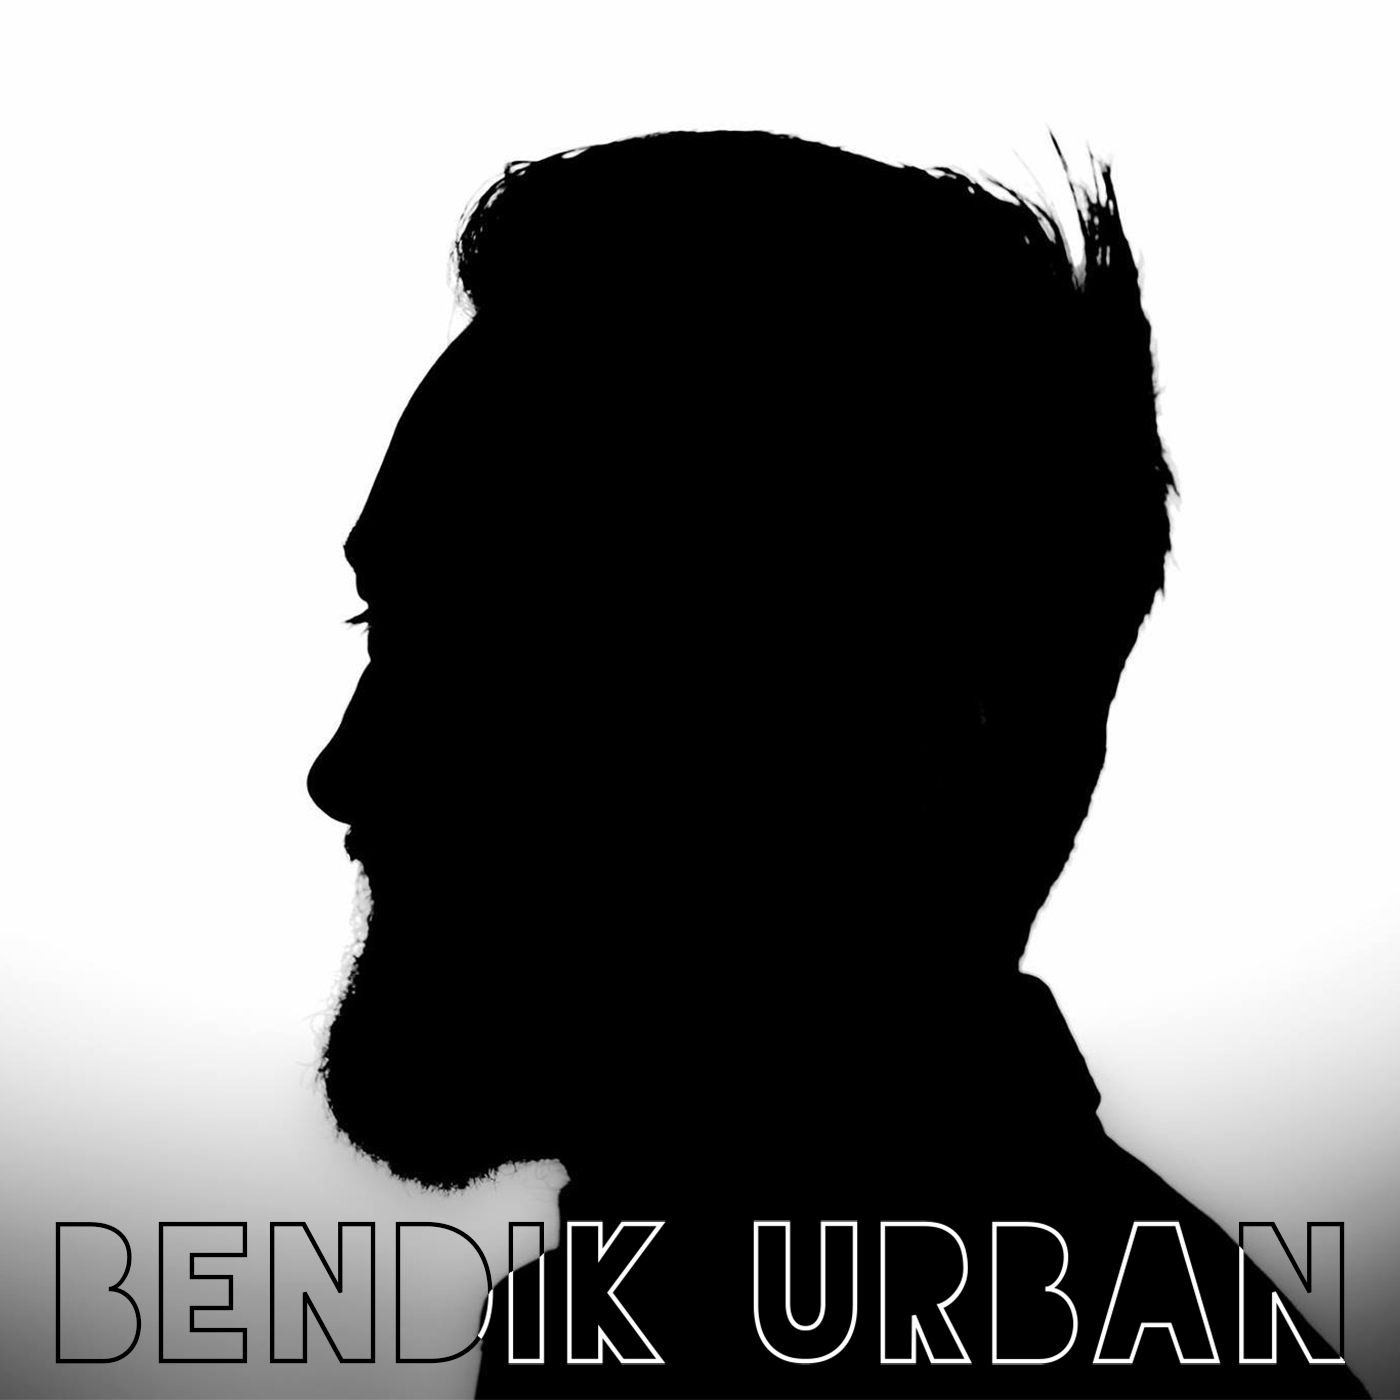 Bendik Urban EP